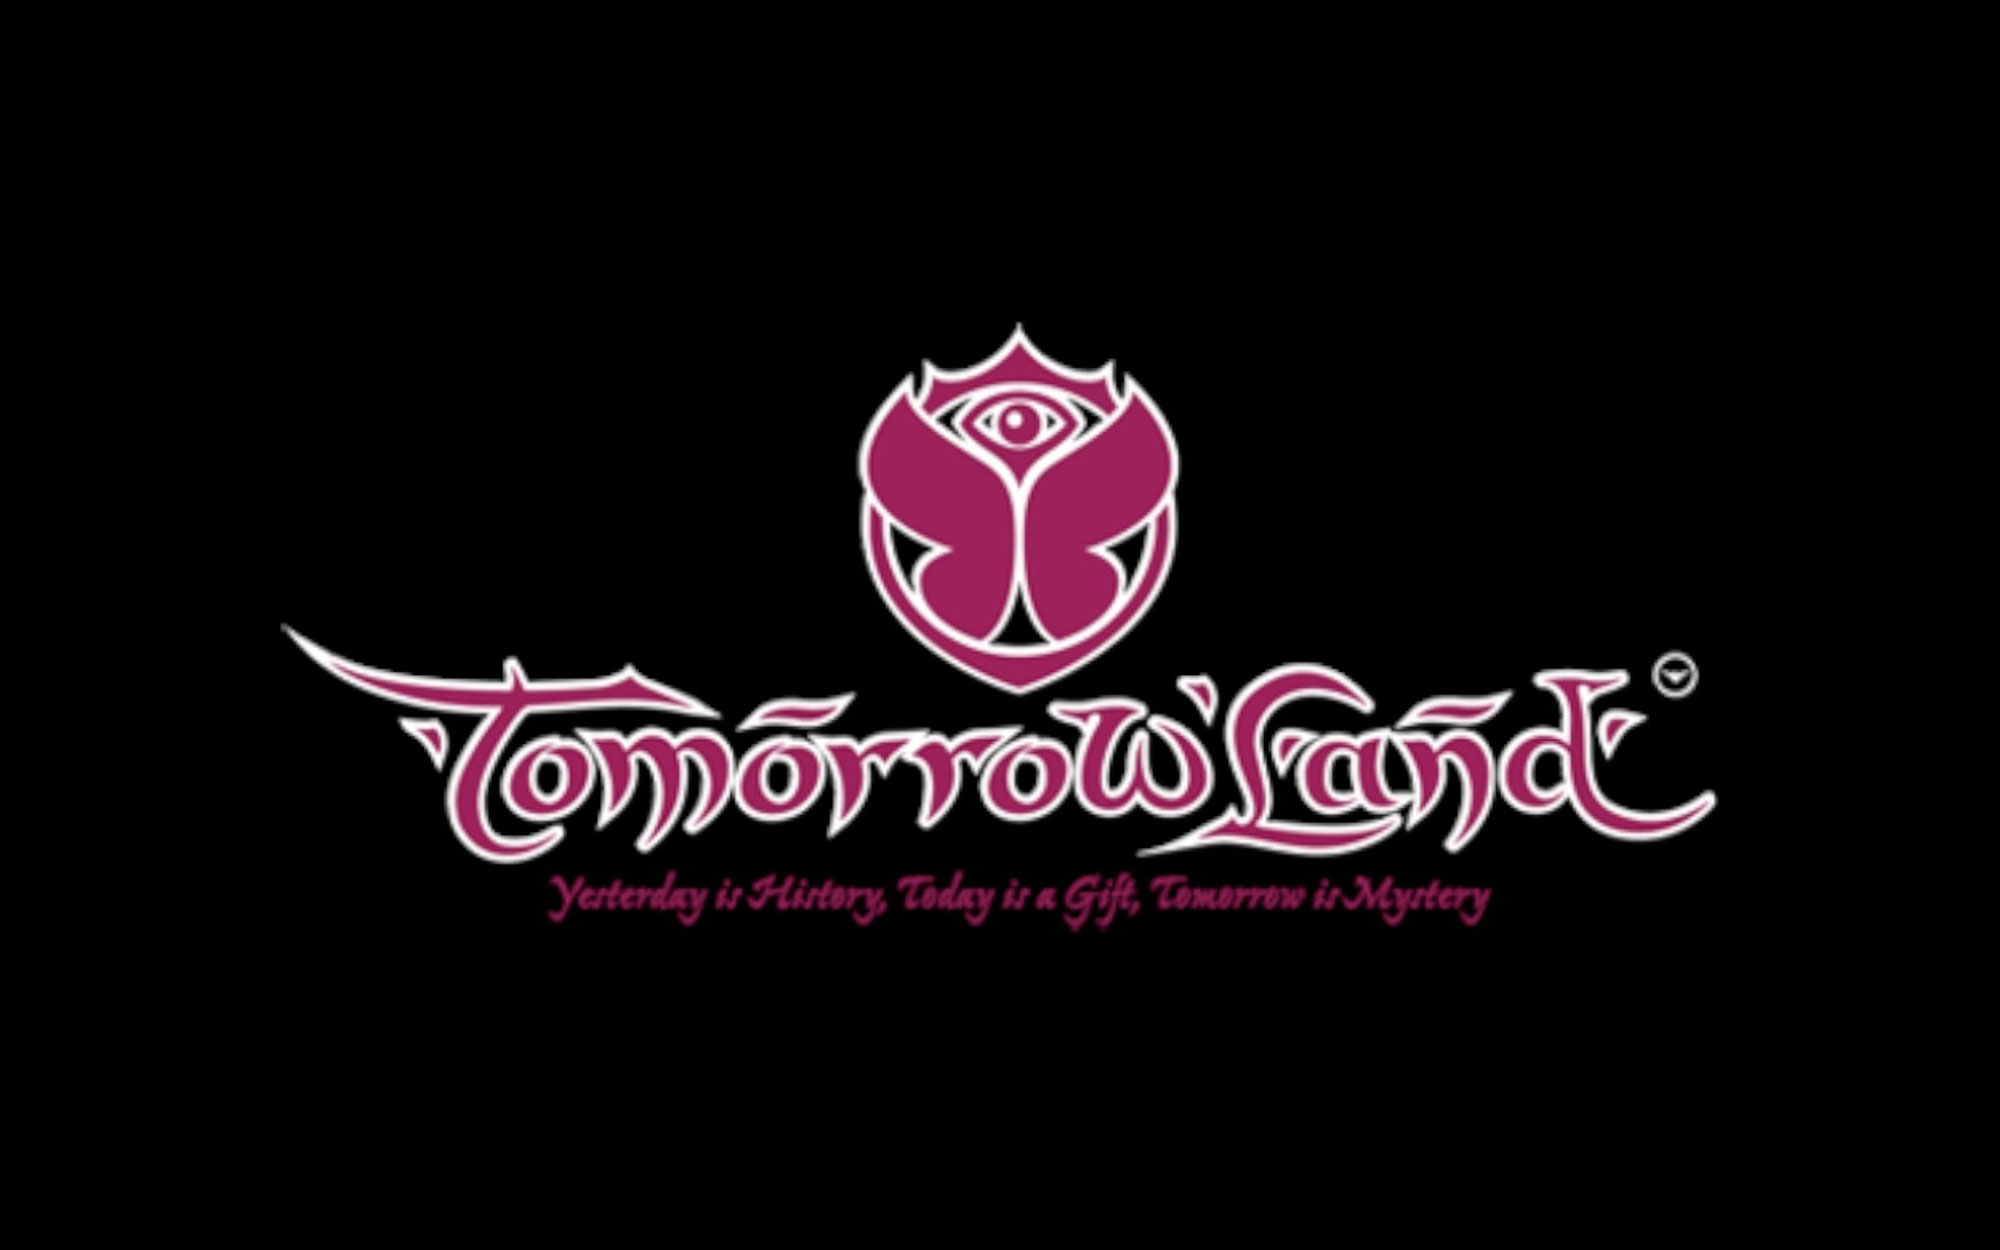 Iphone 7 Hd Wallpapers 1080p Pin Tomorrowland Festival Logo On Pinterest